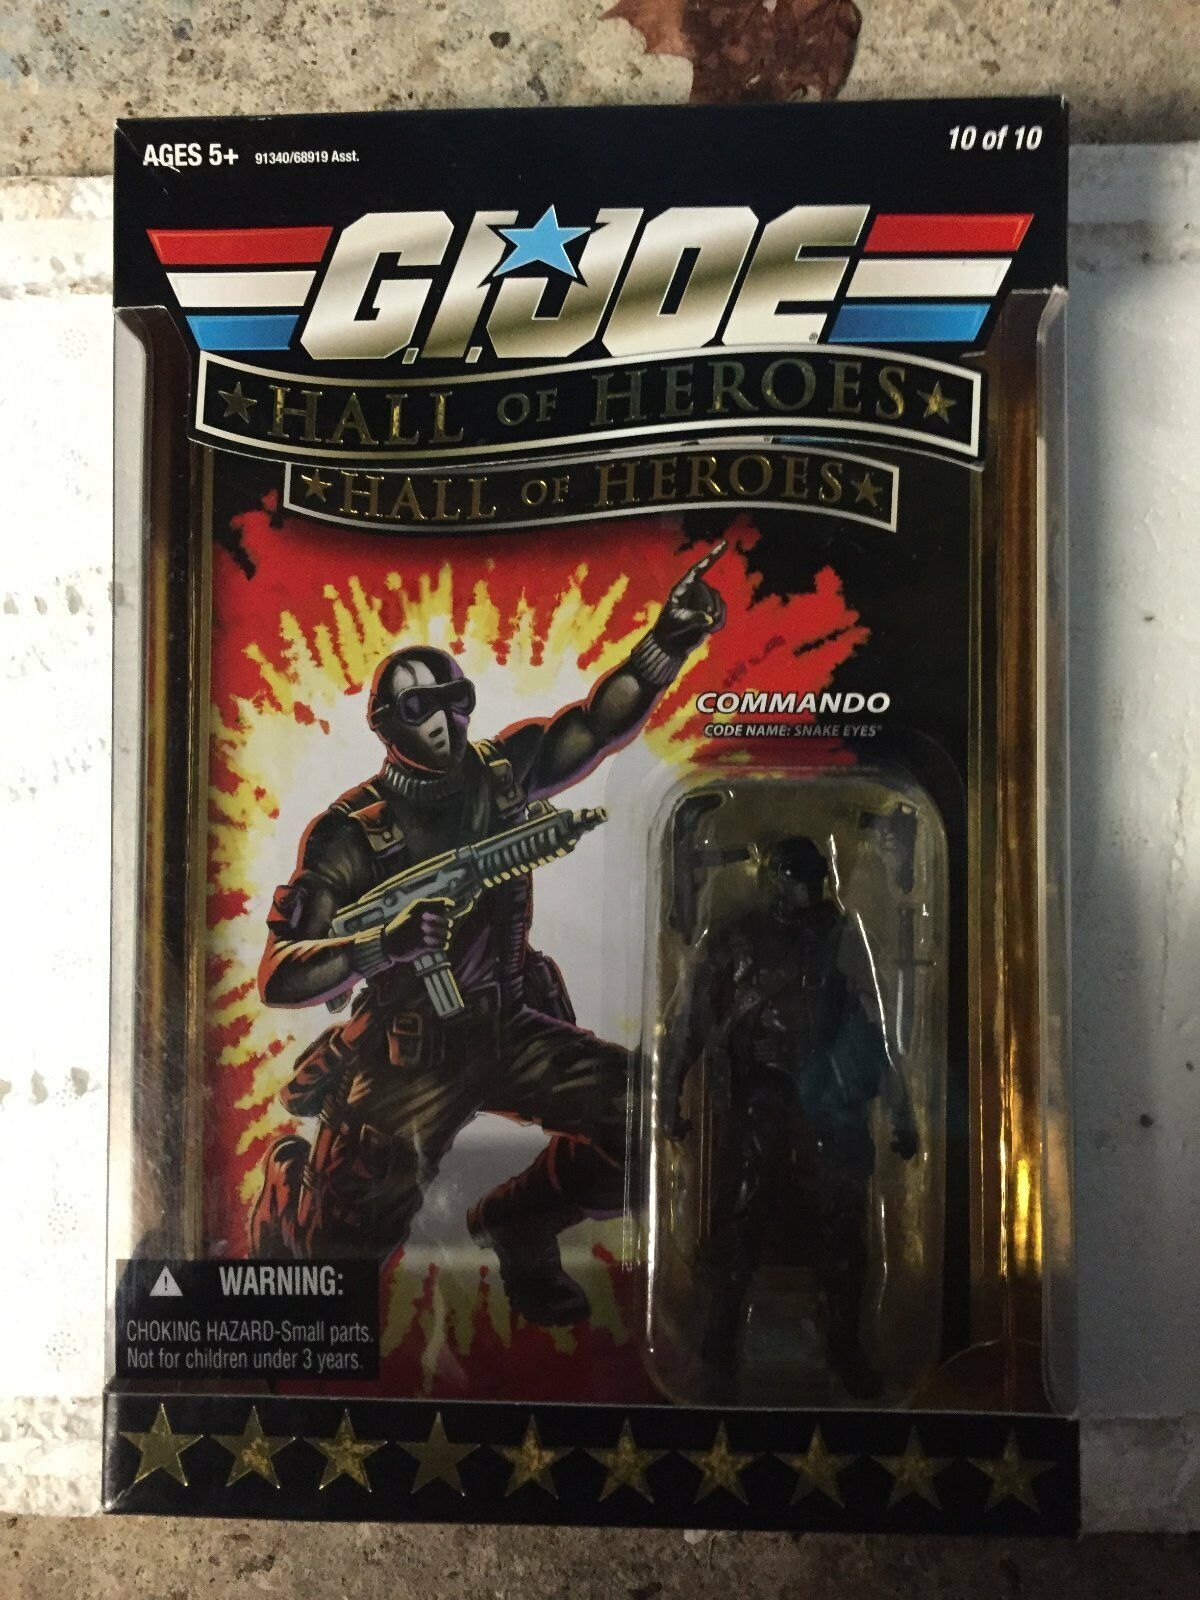 Brand New Sealed GI JOE Hall of Heroes Commando Snake Eyes